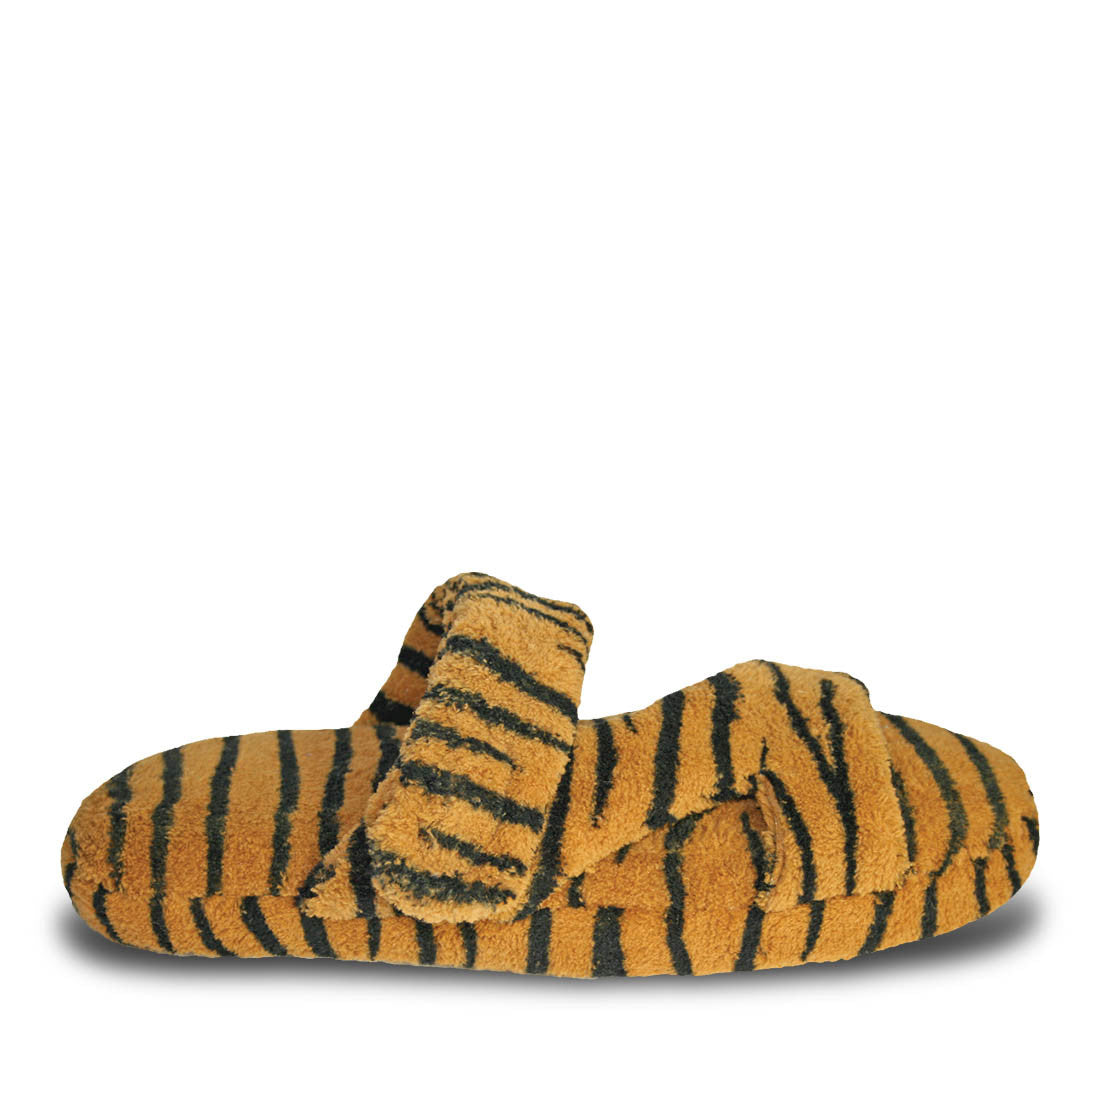 Image of Women's Fluffy Z Slippers - Tiger